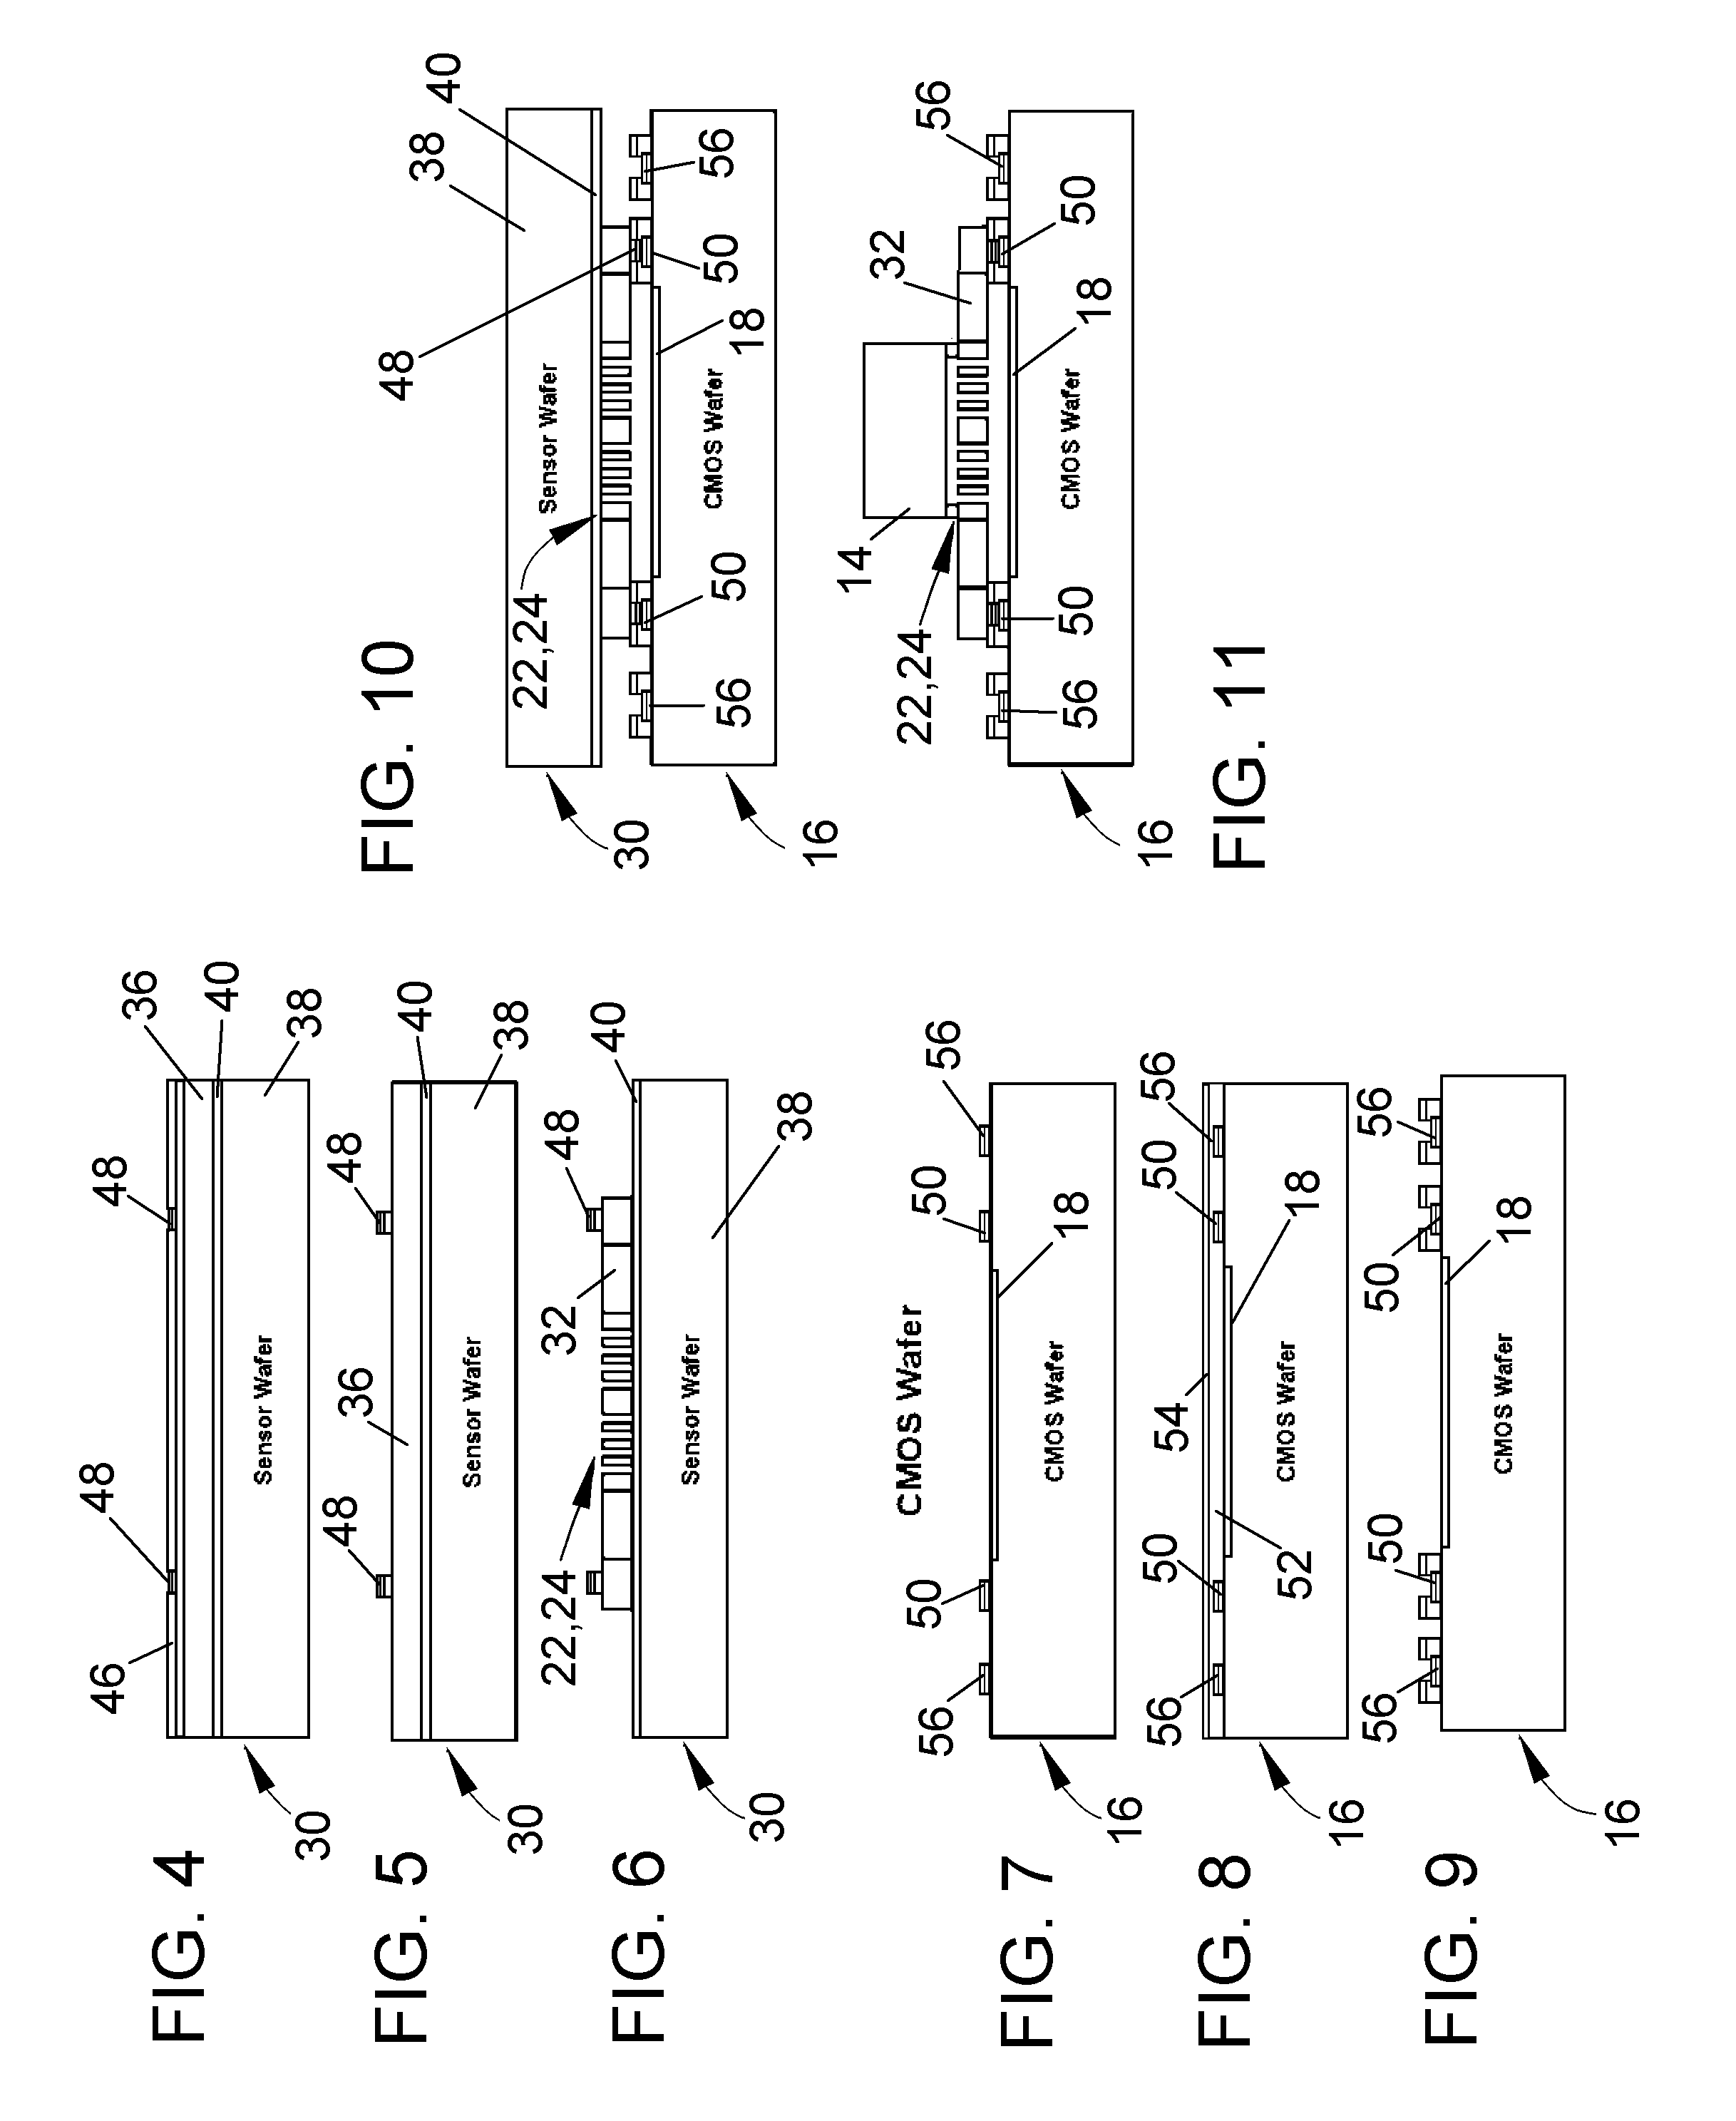 patente us7810394 integrated sensor and circuitry google patentes patent drawing